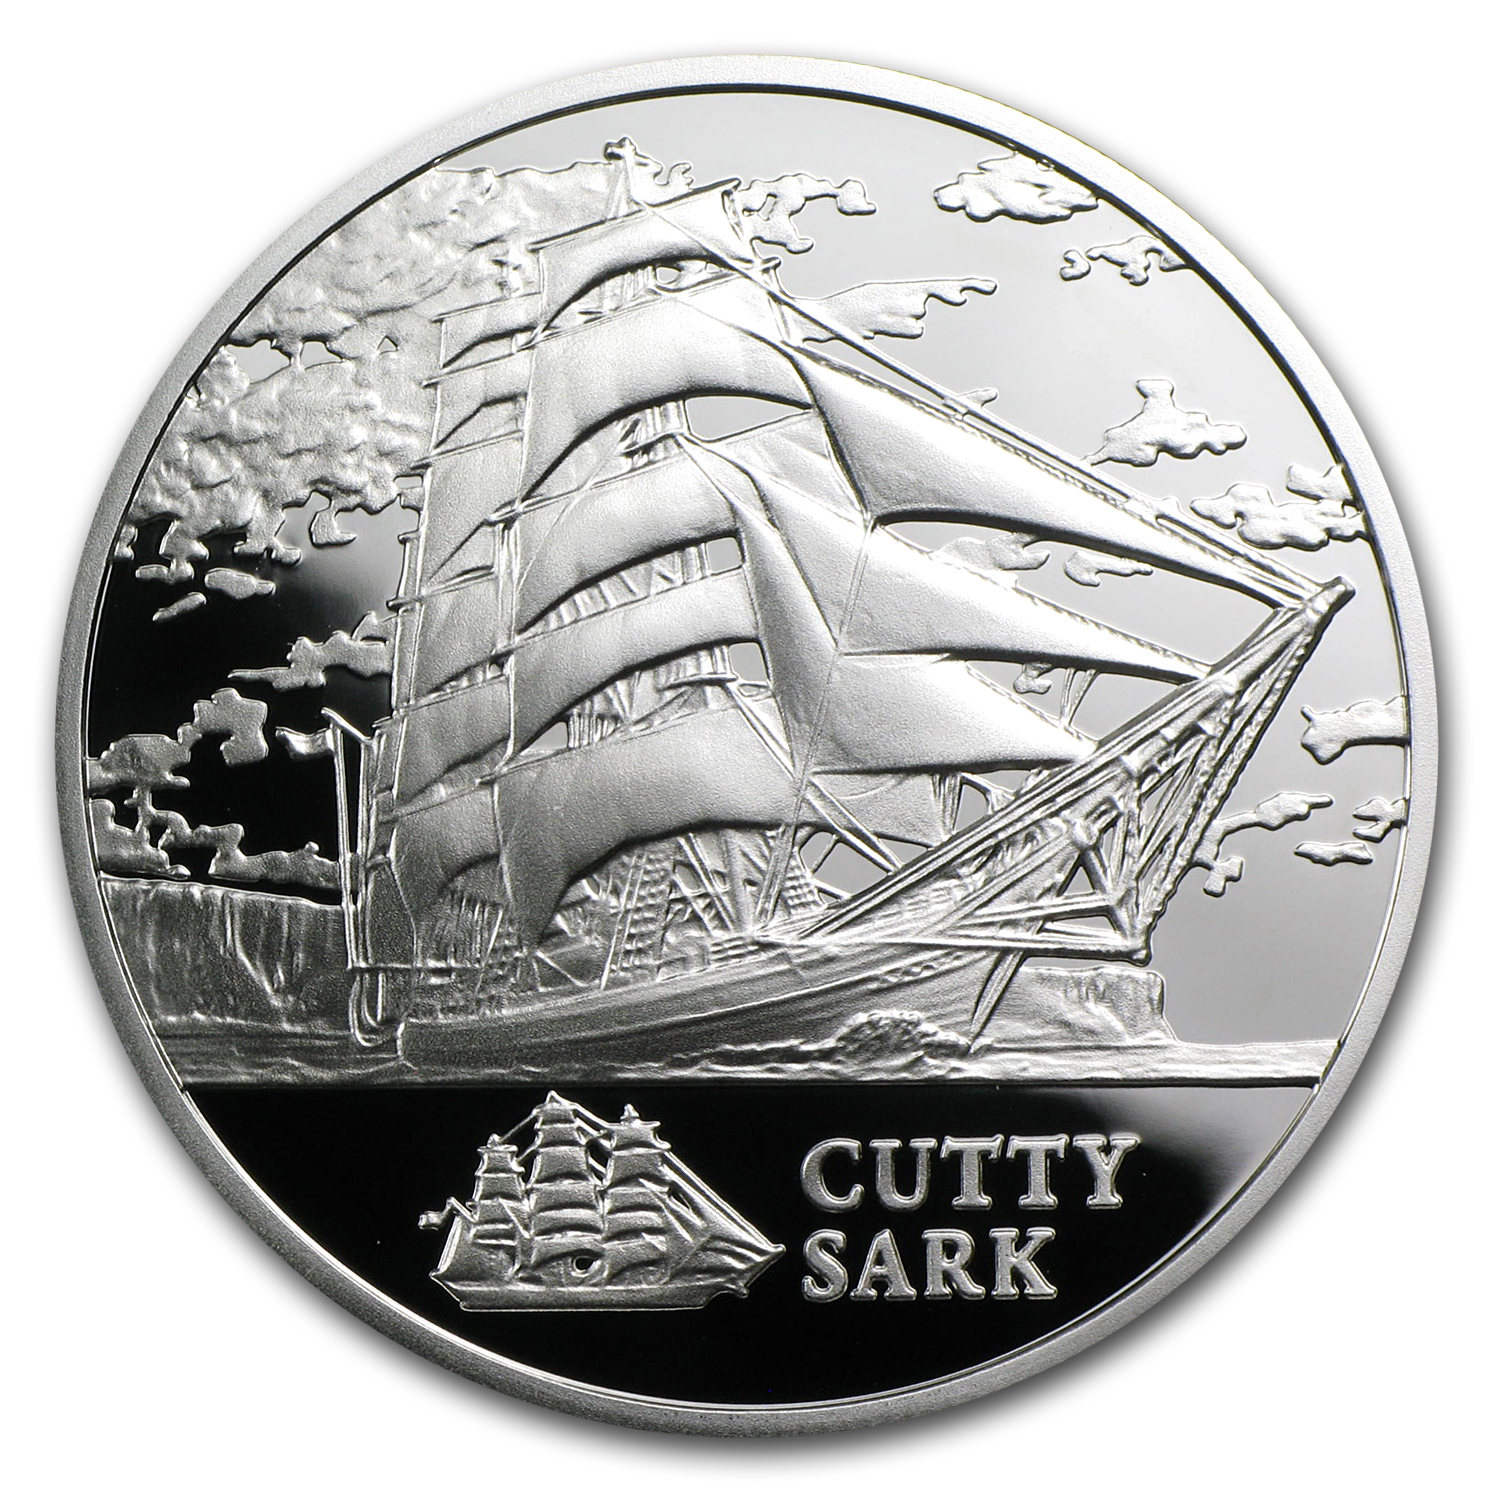 2011 Belarus Silver Sailing Ships w/Hologram Cutty Sark